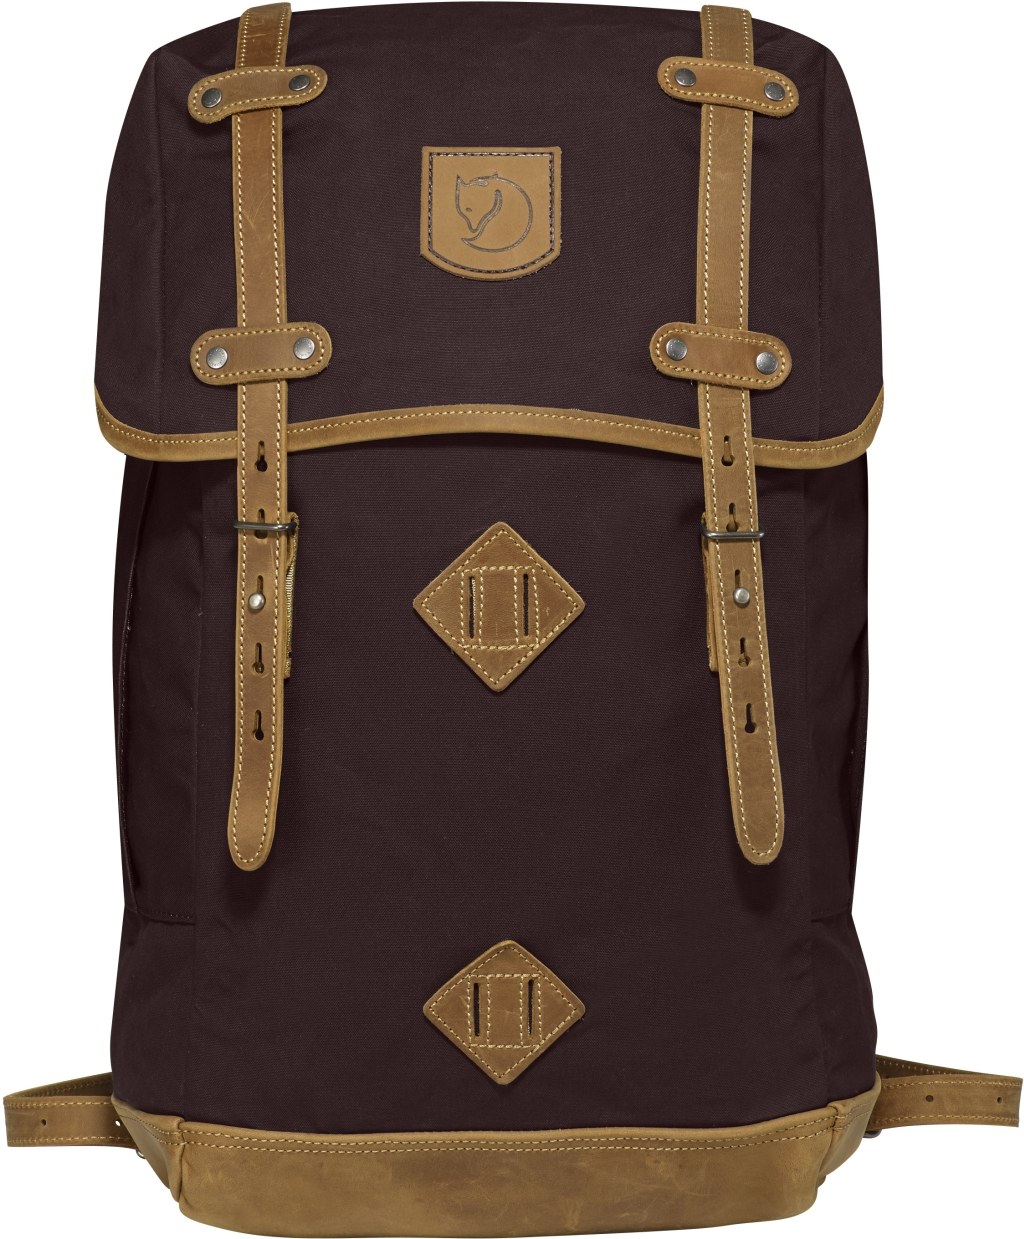 FjallRaven Rucksack No.21 Large Hickory Brown-30